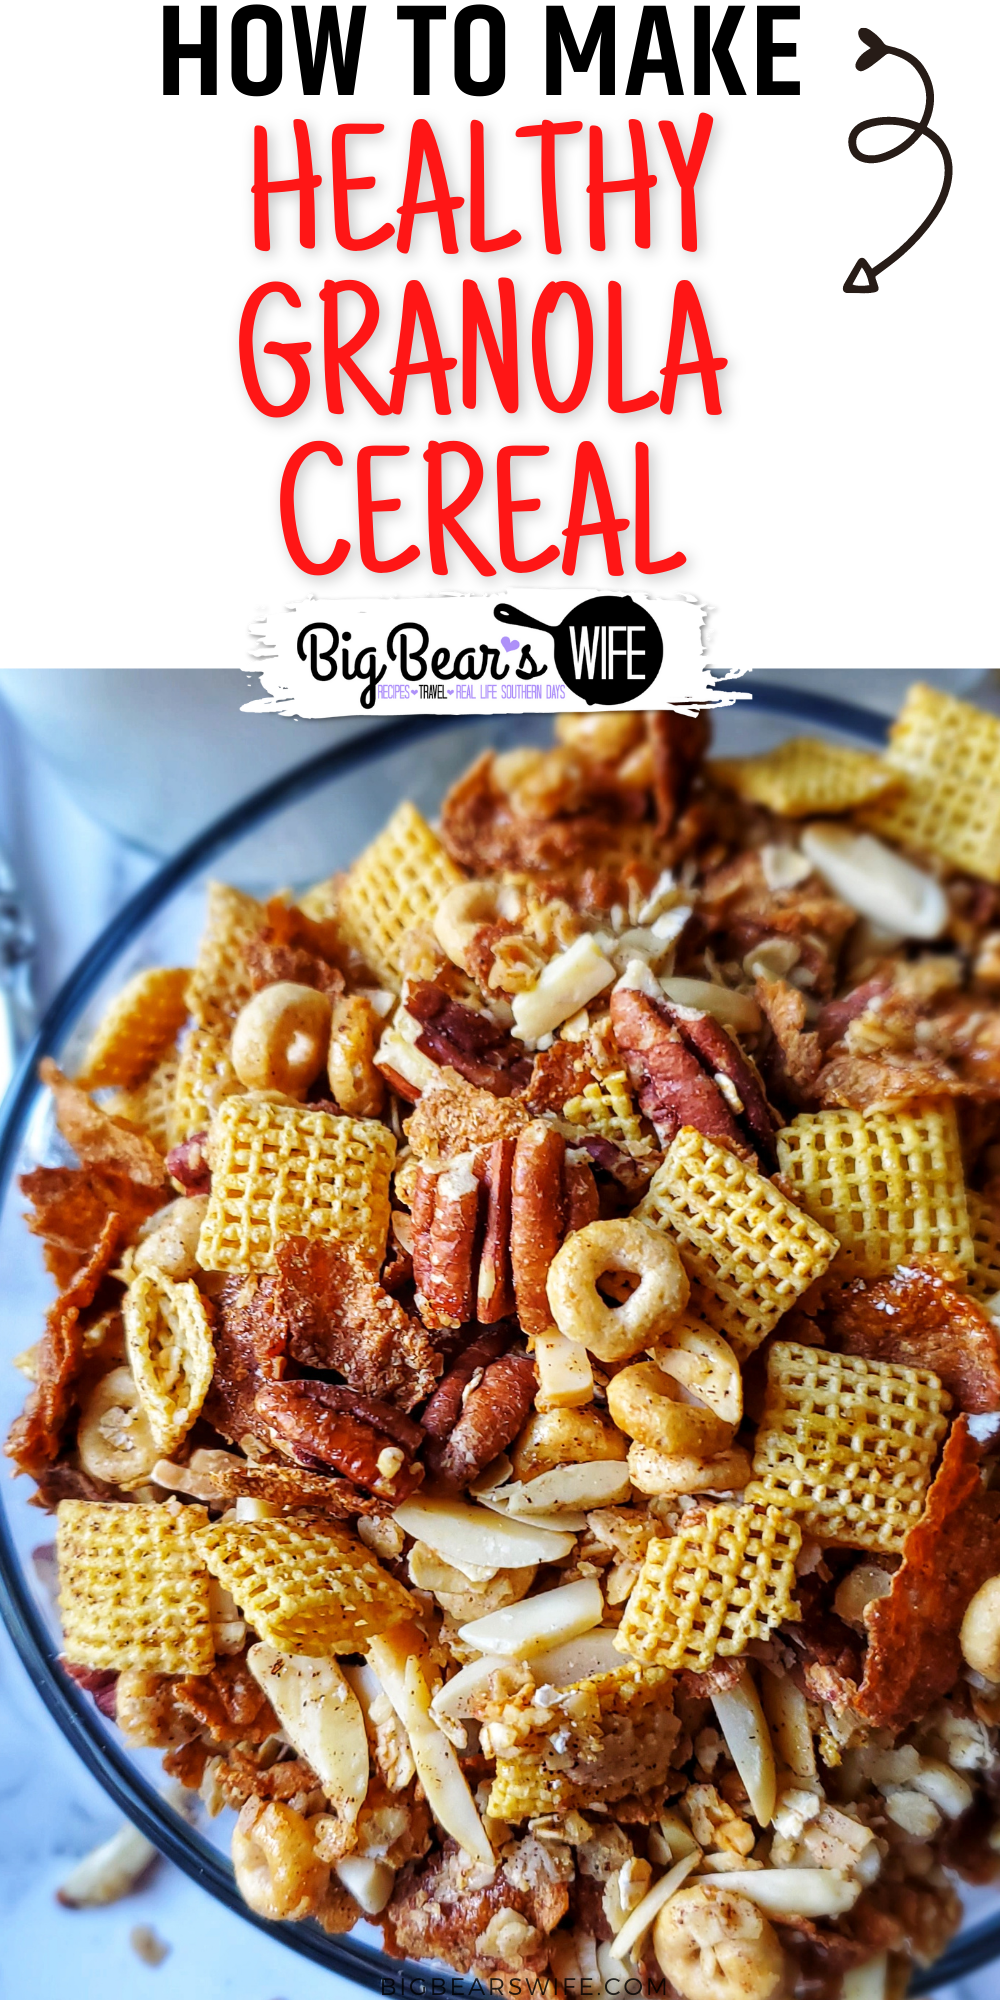 Looking for a Healthy Granola Cereal Recipe to have in the mornings or for a snack? This Healthy Granola Cereal is perfect for breakfast with milk and it's a great topping for yogurt!